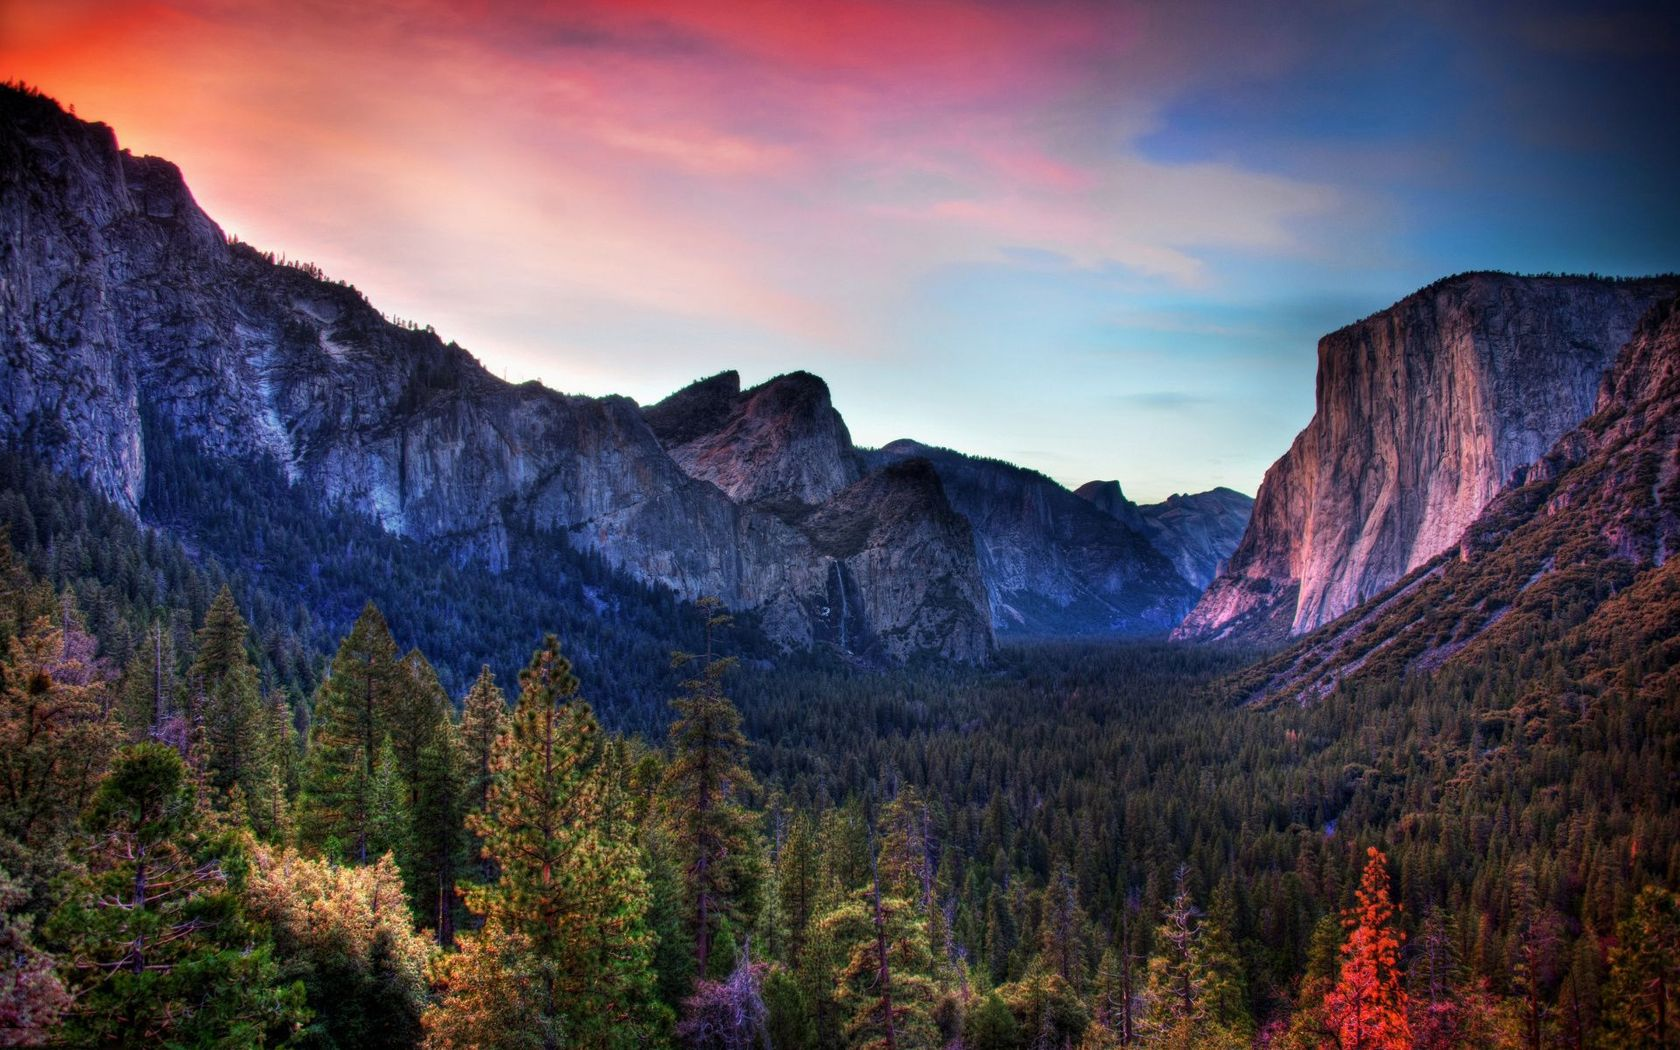 Yosemite national park wallpaper wallpapersafari - Yosemite national park hd wallpaper ...